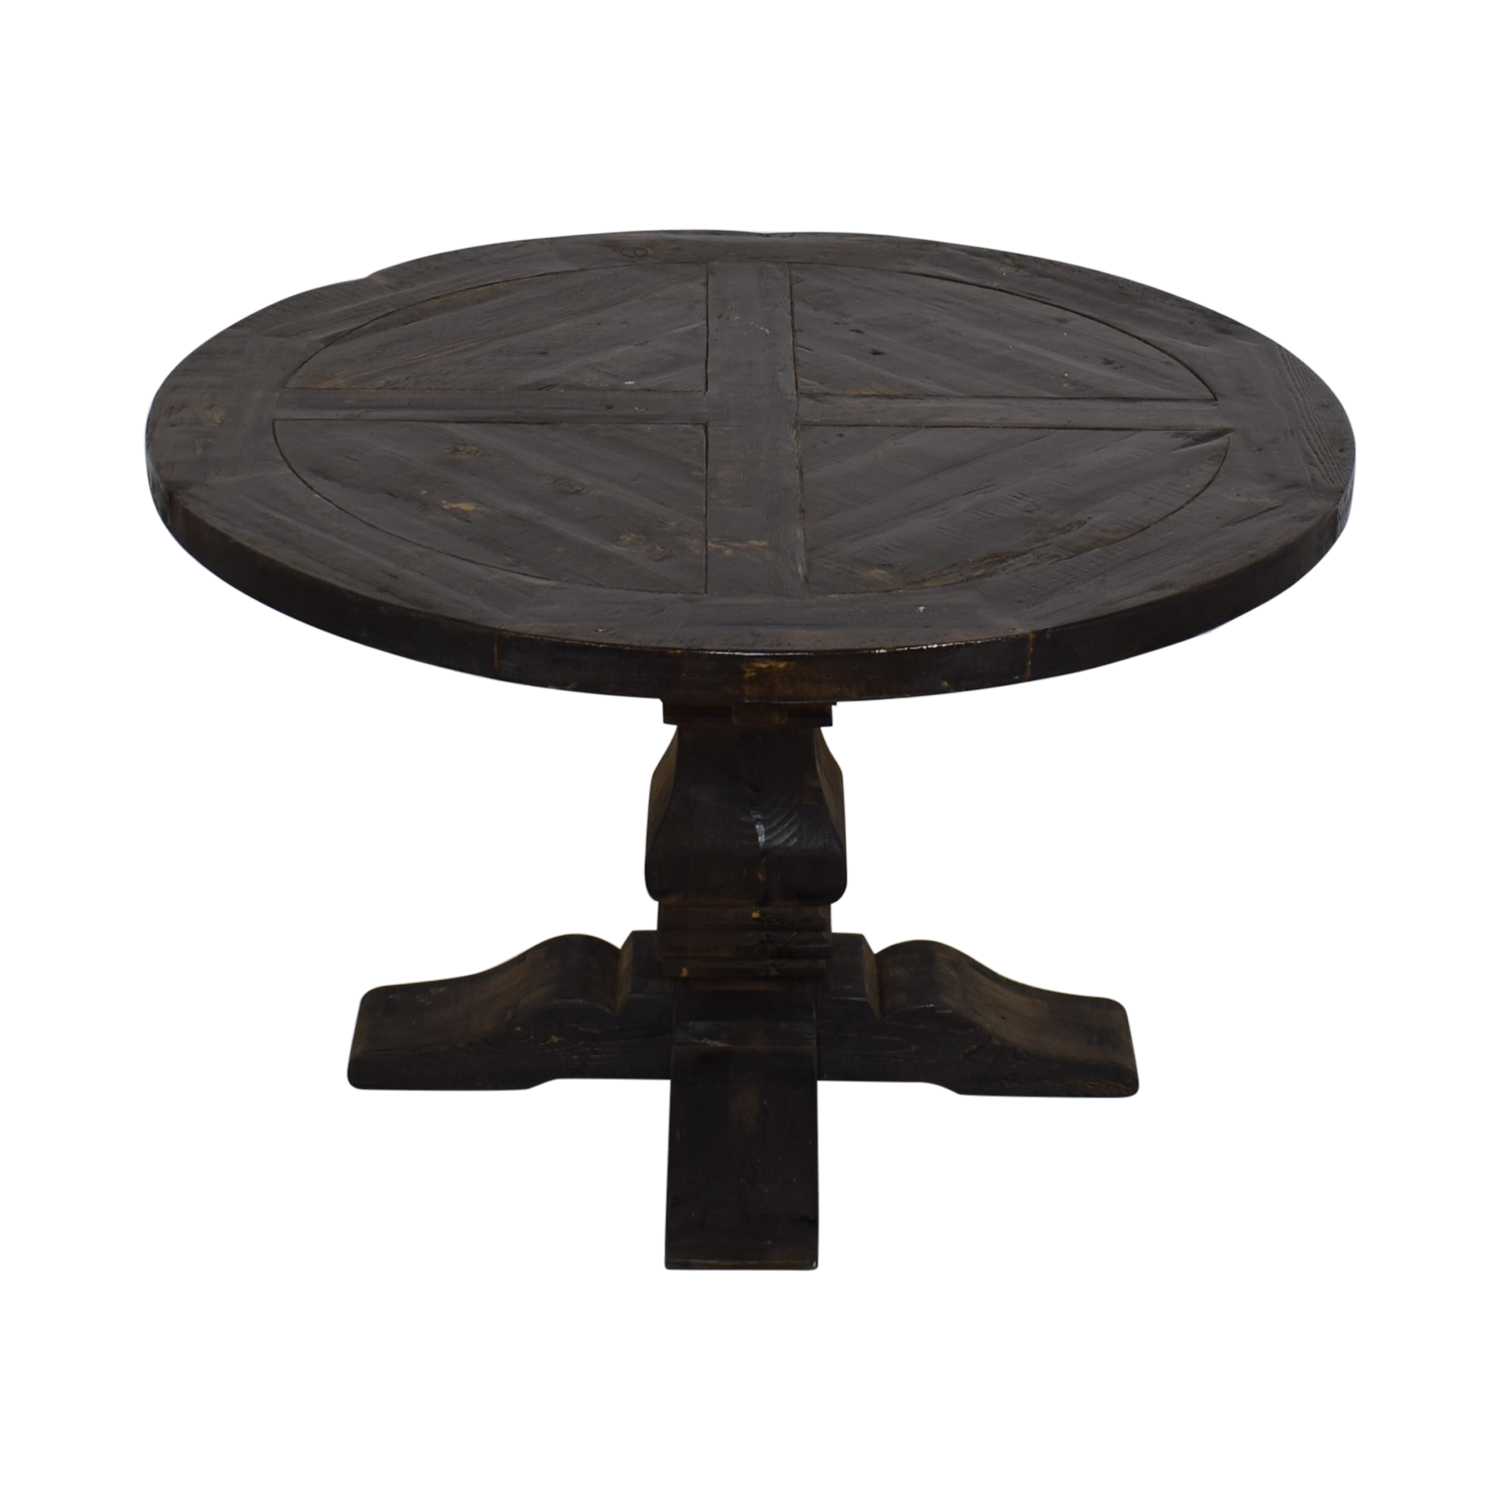 buy Restoration Hardware Round Salvaged Wood Distressed Trestle Table Restoration Hardware Tables